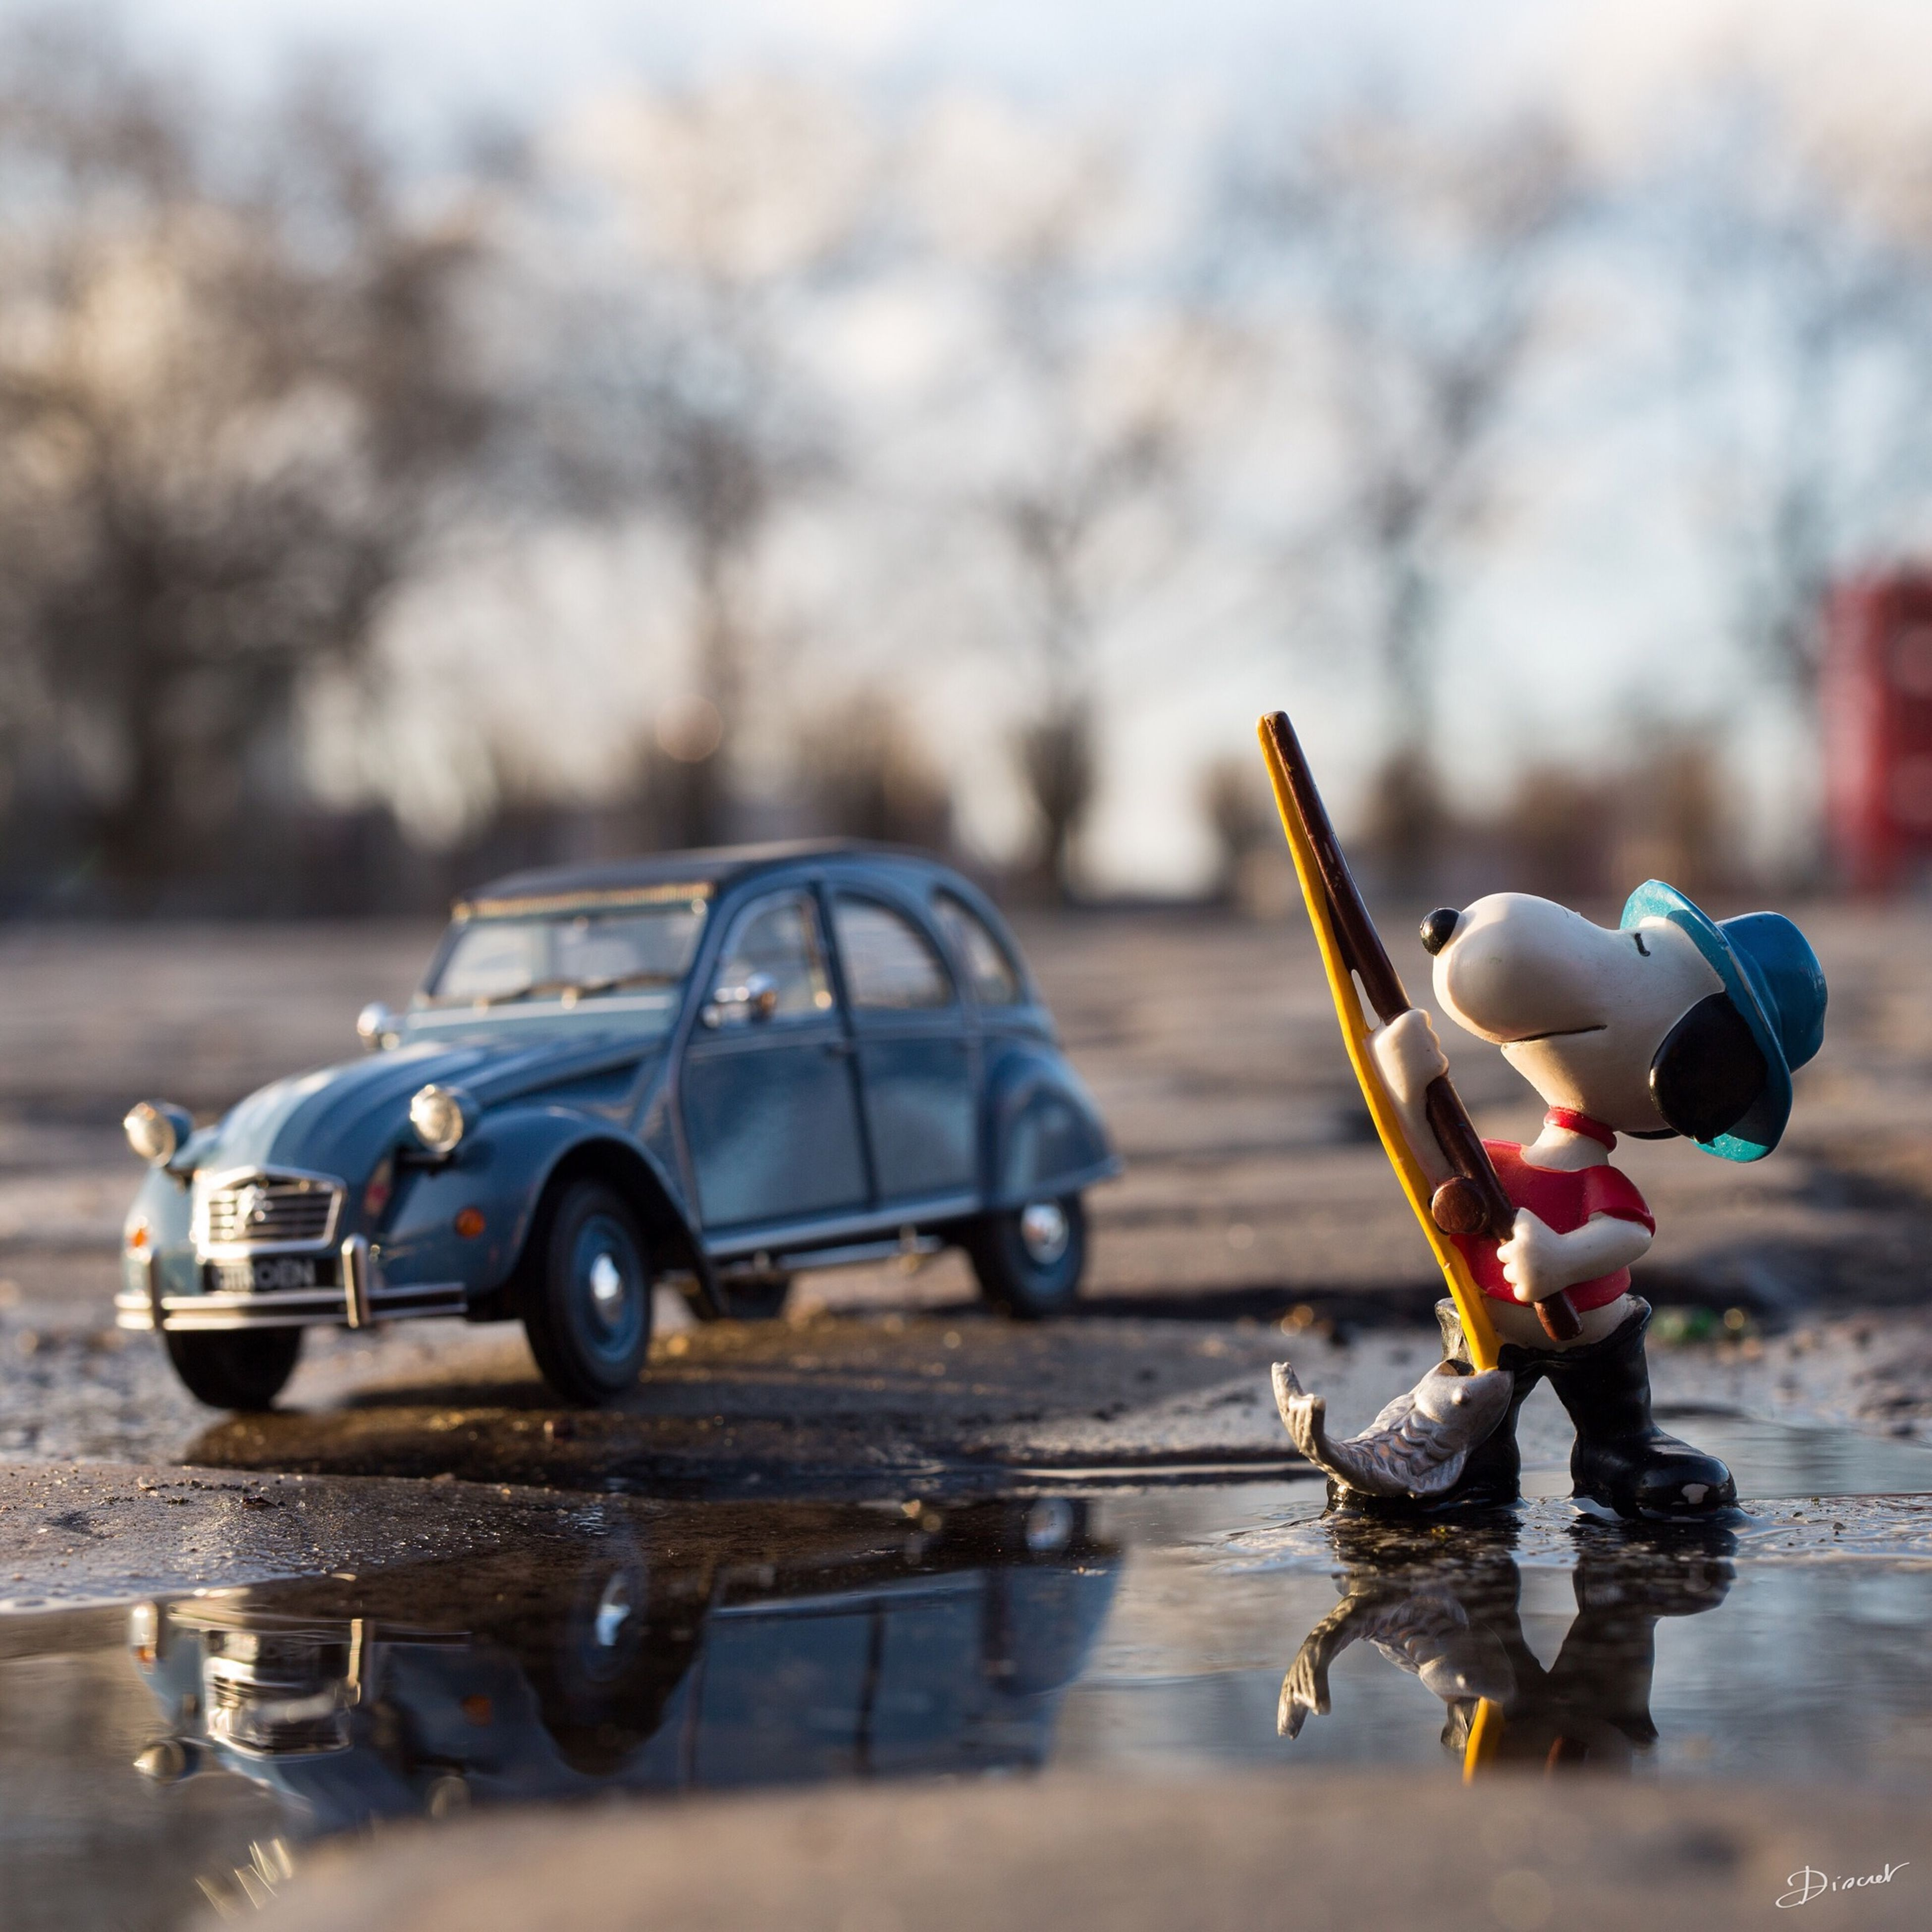 focus on foreground, close-up, selective focus, transportation, mode of transport, day, outdoors, no people, metal, toy, insect, water, still life, reflection, nature, single object, rope, bottle, abandoned, metallic